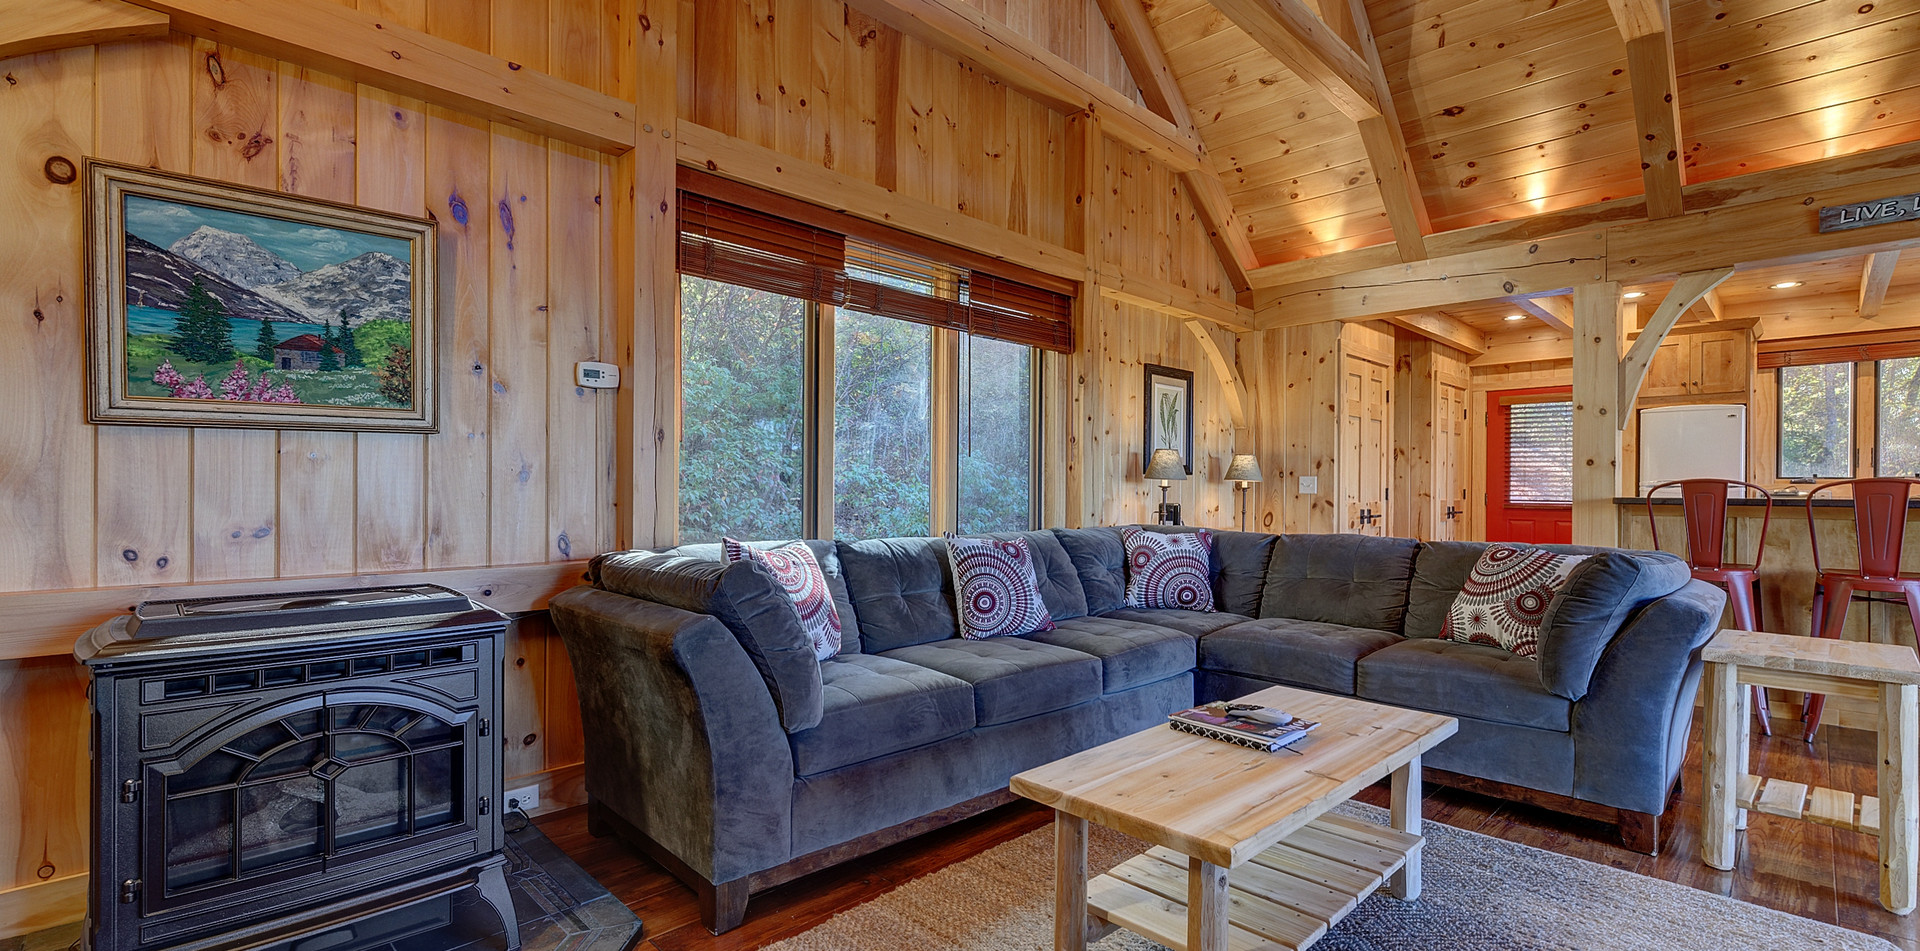 The cottage features a spacious open-concept living area with pellet stove to keep you warm in the winter months.